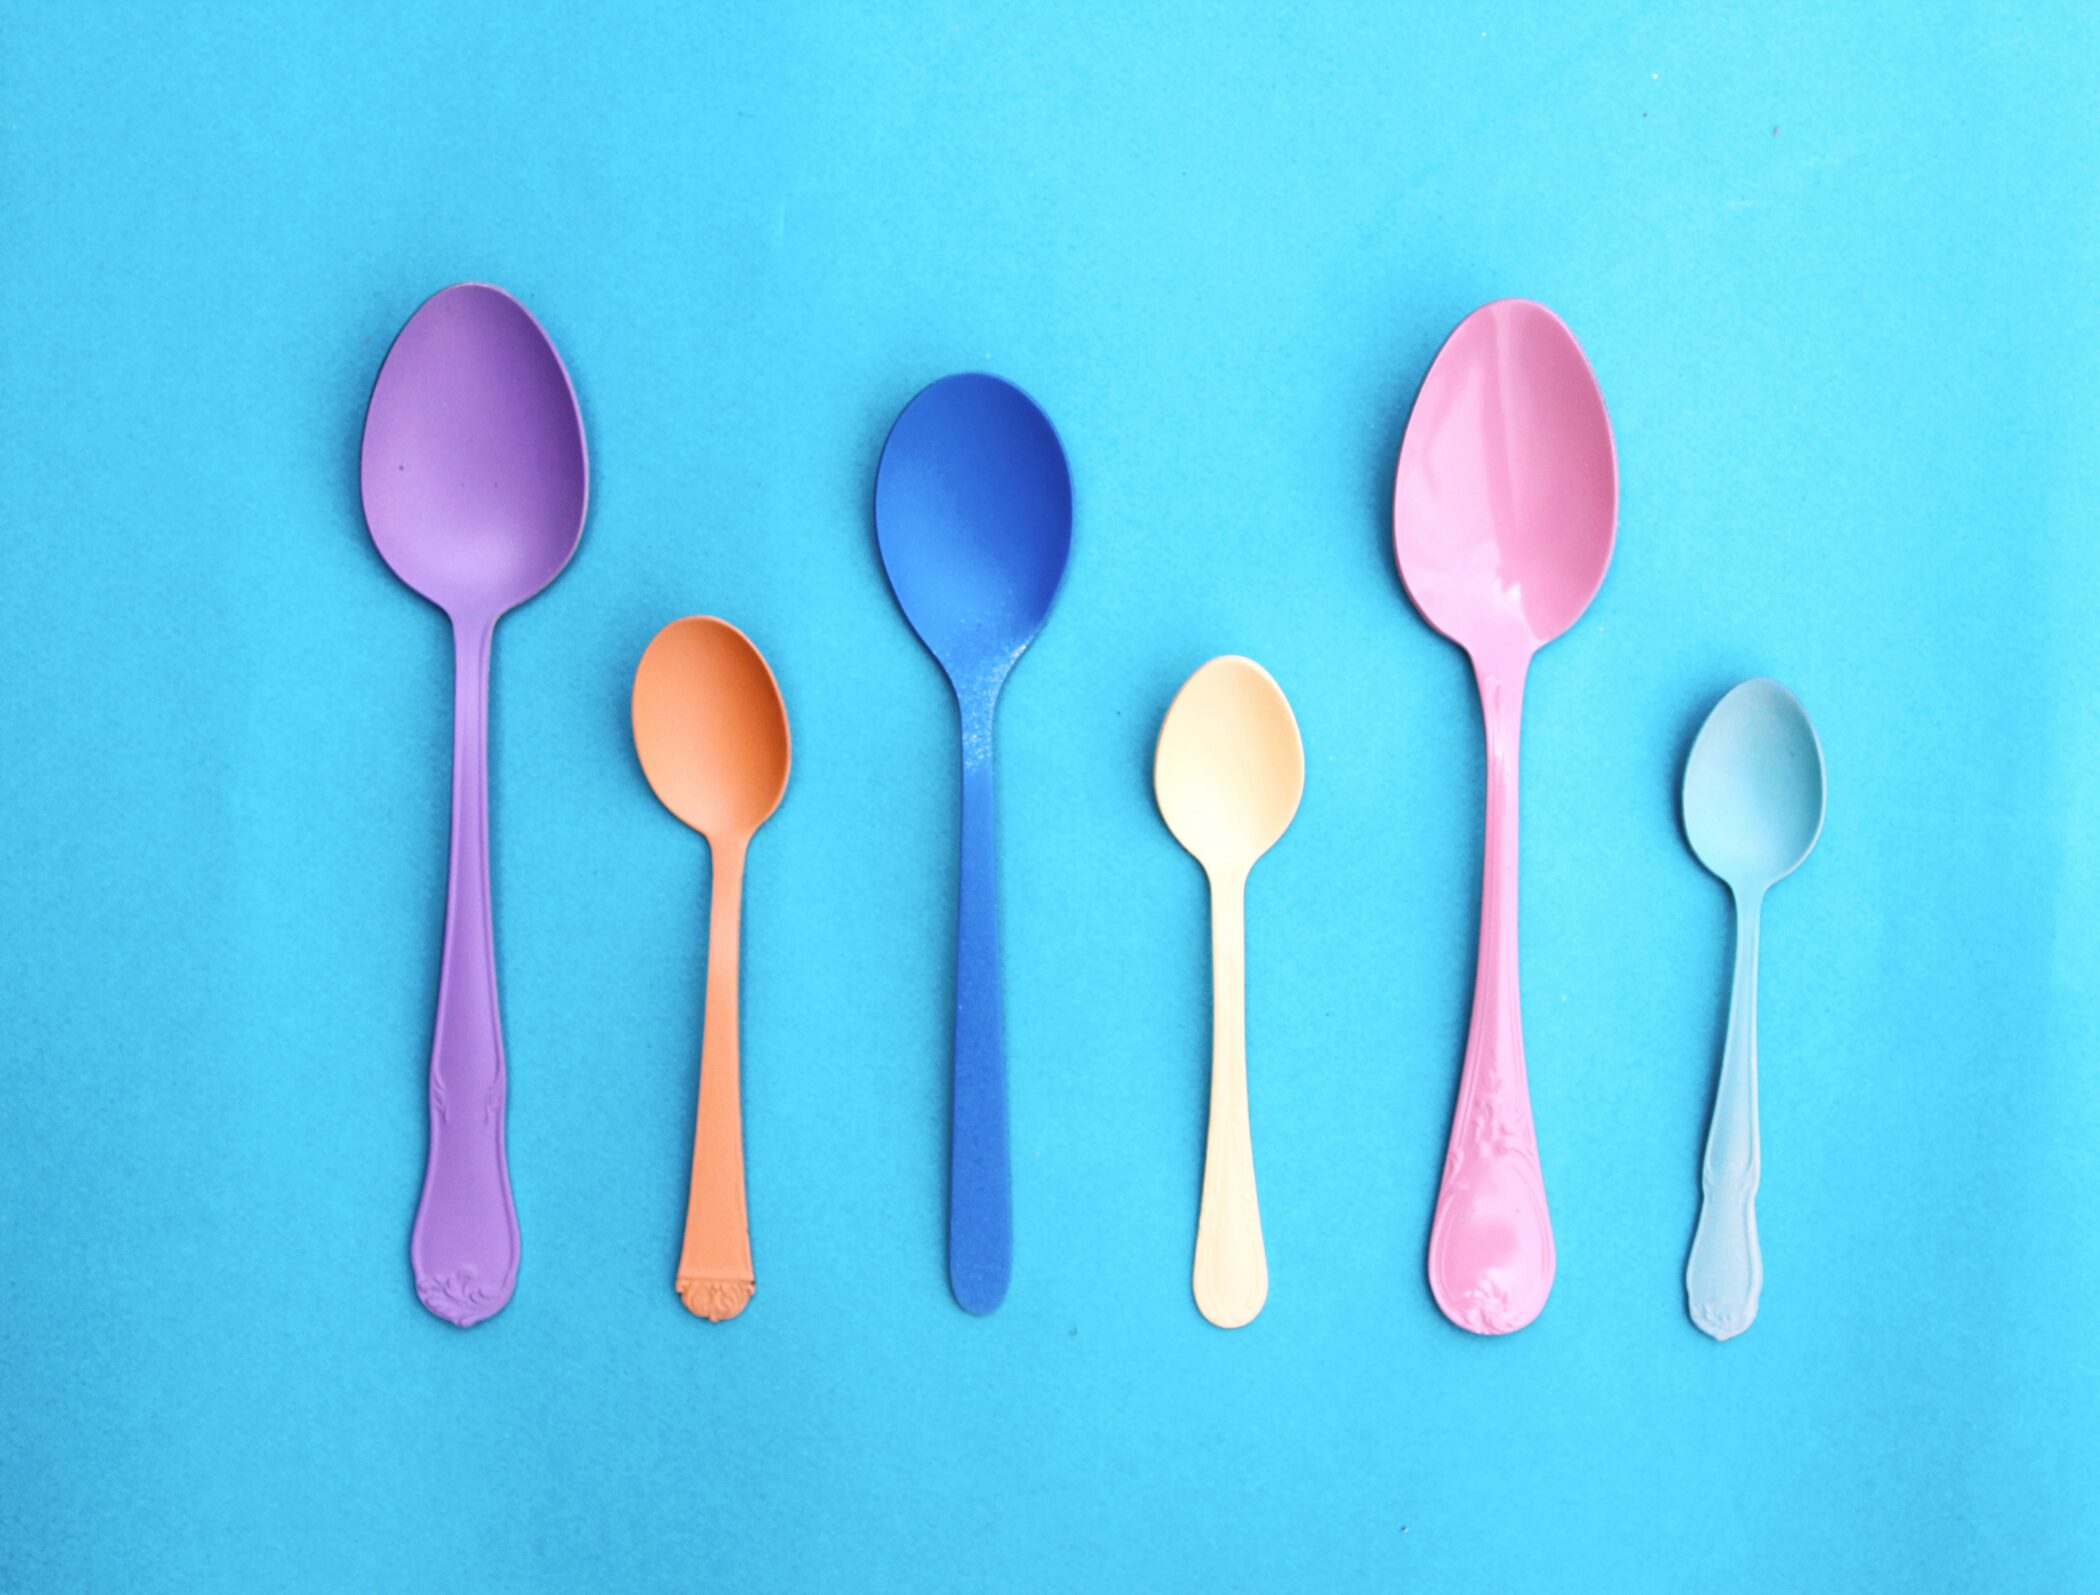 Spoon theory is explained as a metaphor for units of energy by someone experiencing fatigue or chronic illness